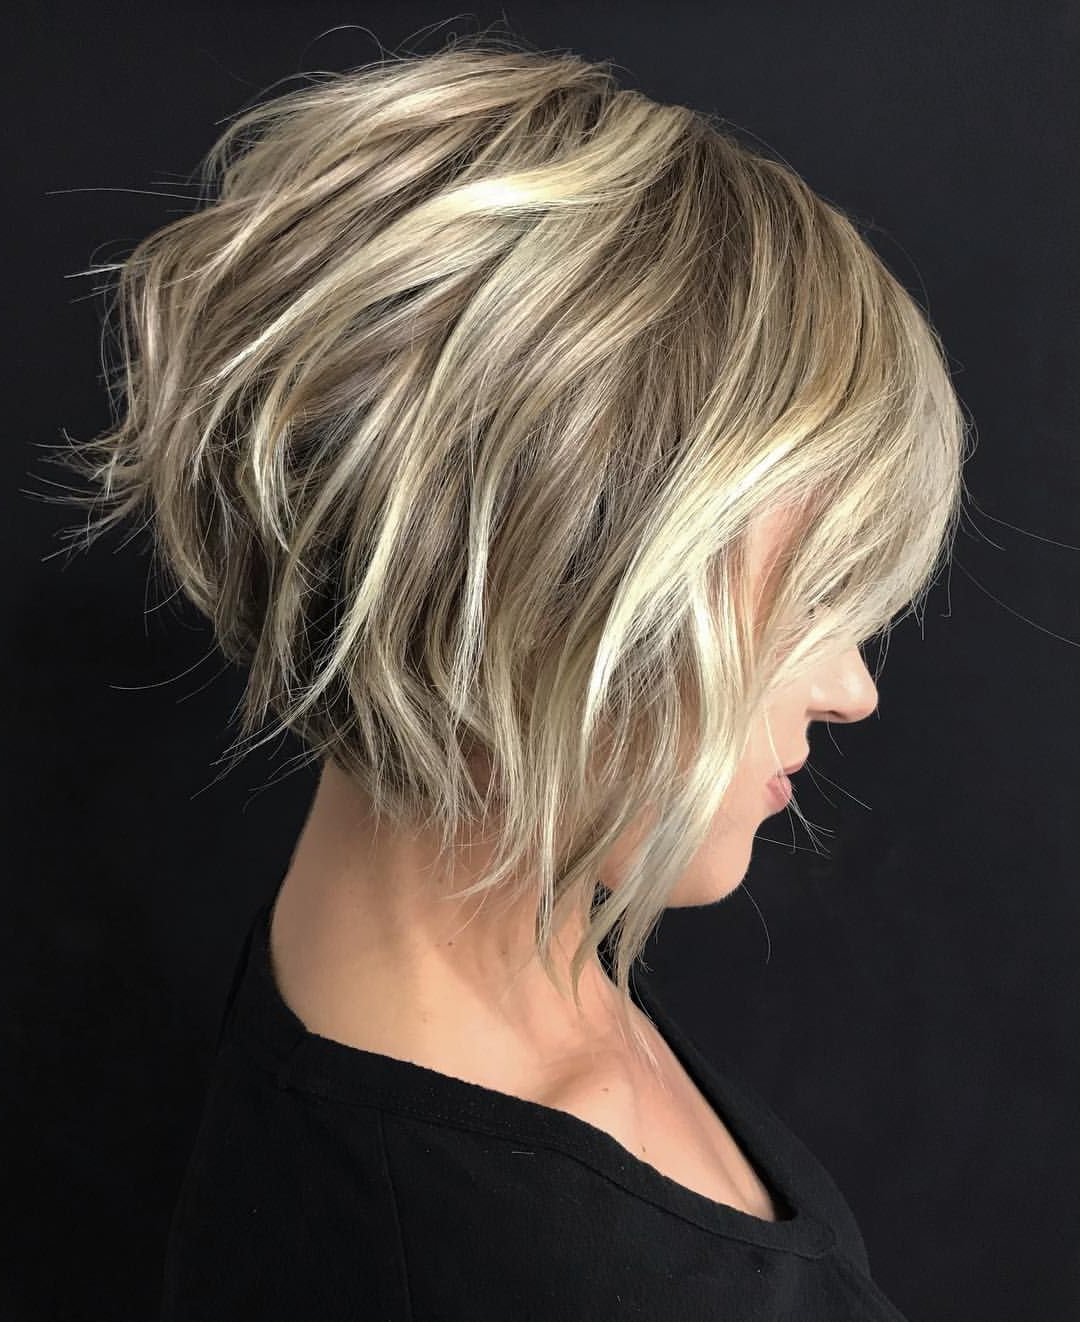 Pinmadison Henry On Gorgeousness! | Pinterest | Short Hair Cuts Inside Dynamic Tousled Blonde Bob Hairstyles With Dark Underlayer (View 19 of 20)